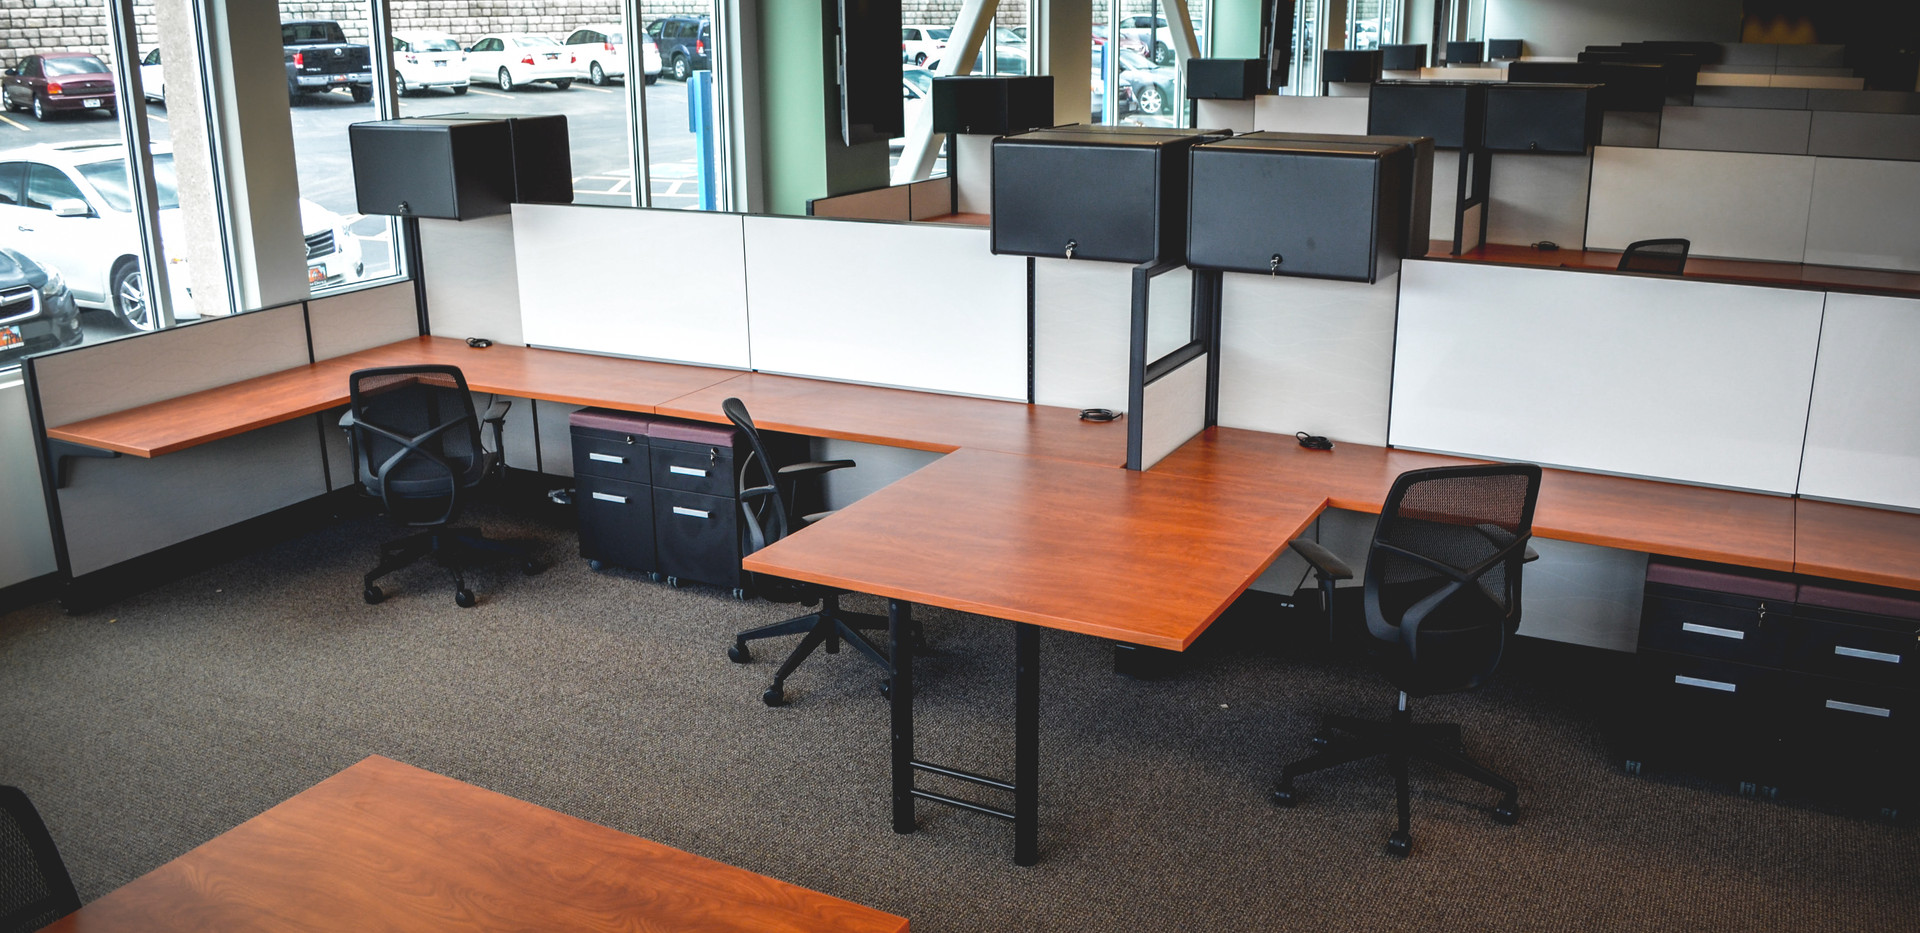 6X6 collaborative work stations with individual overhead storage, whiteboard and mobile pedestal